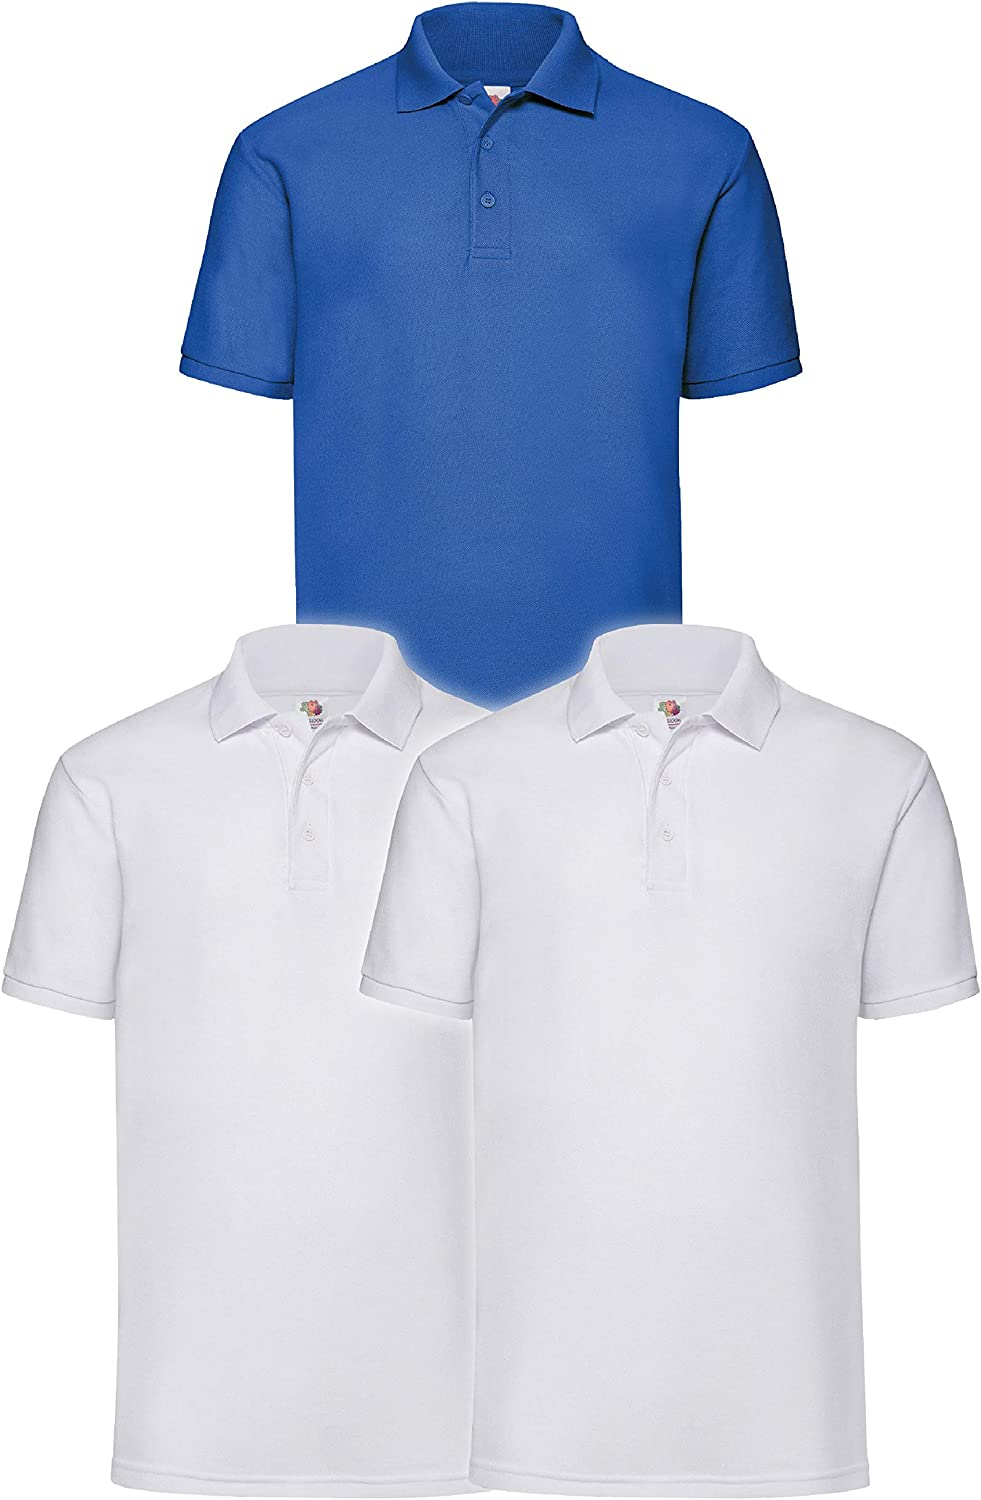 Pack of 3 Fruit of the Loom Mens Polo Shirt